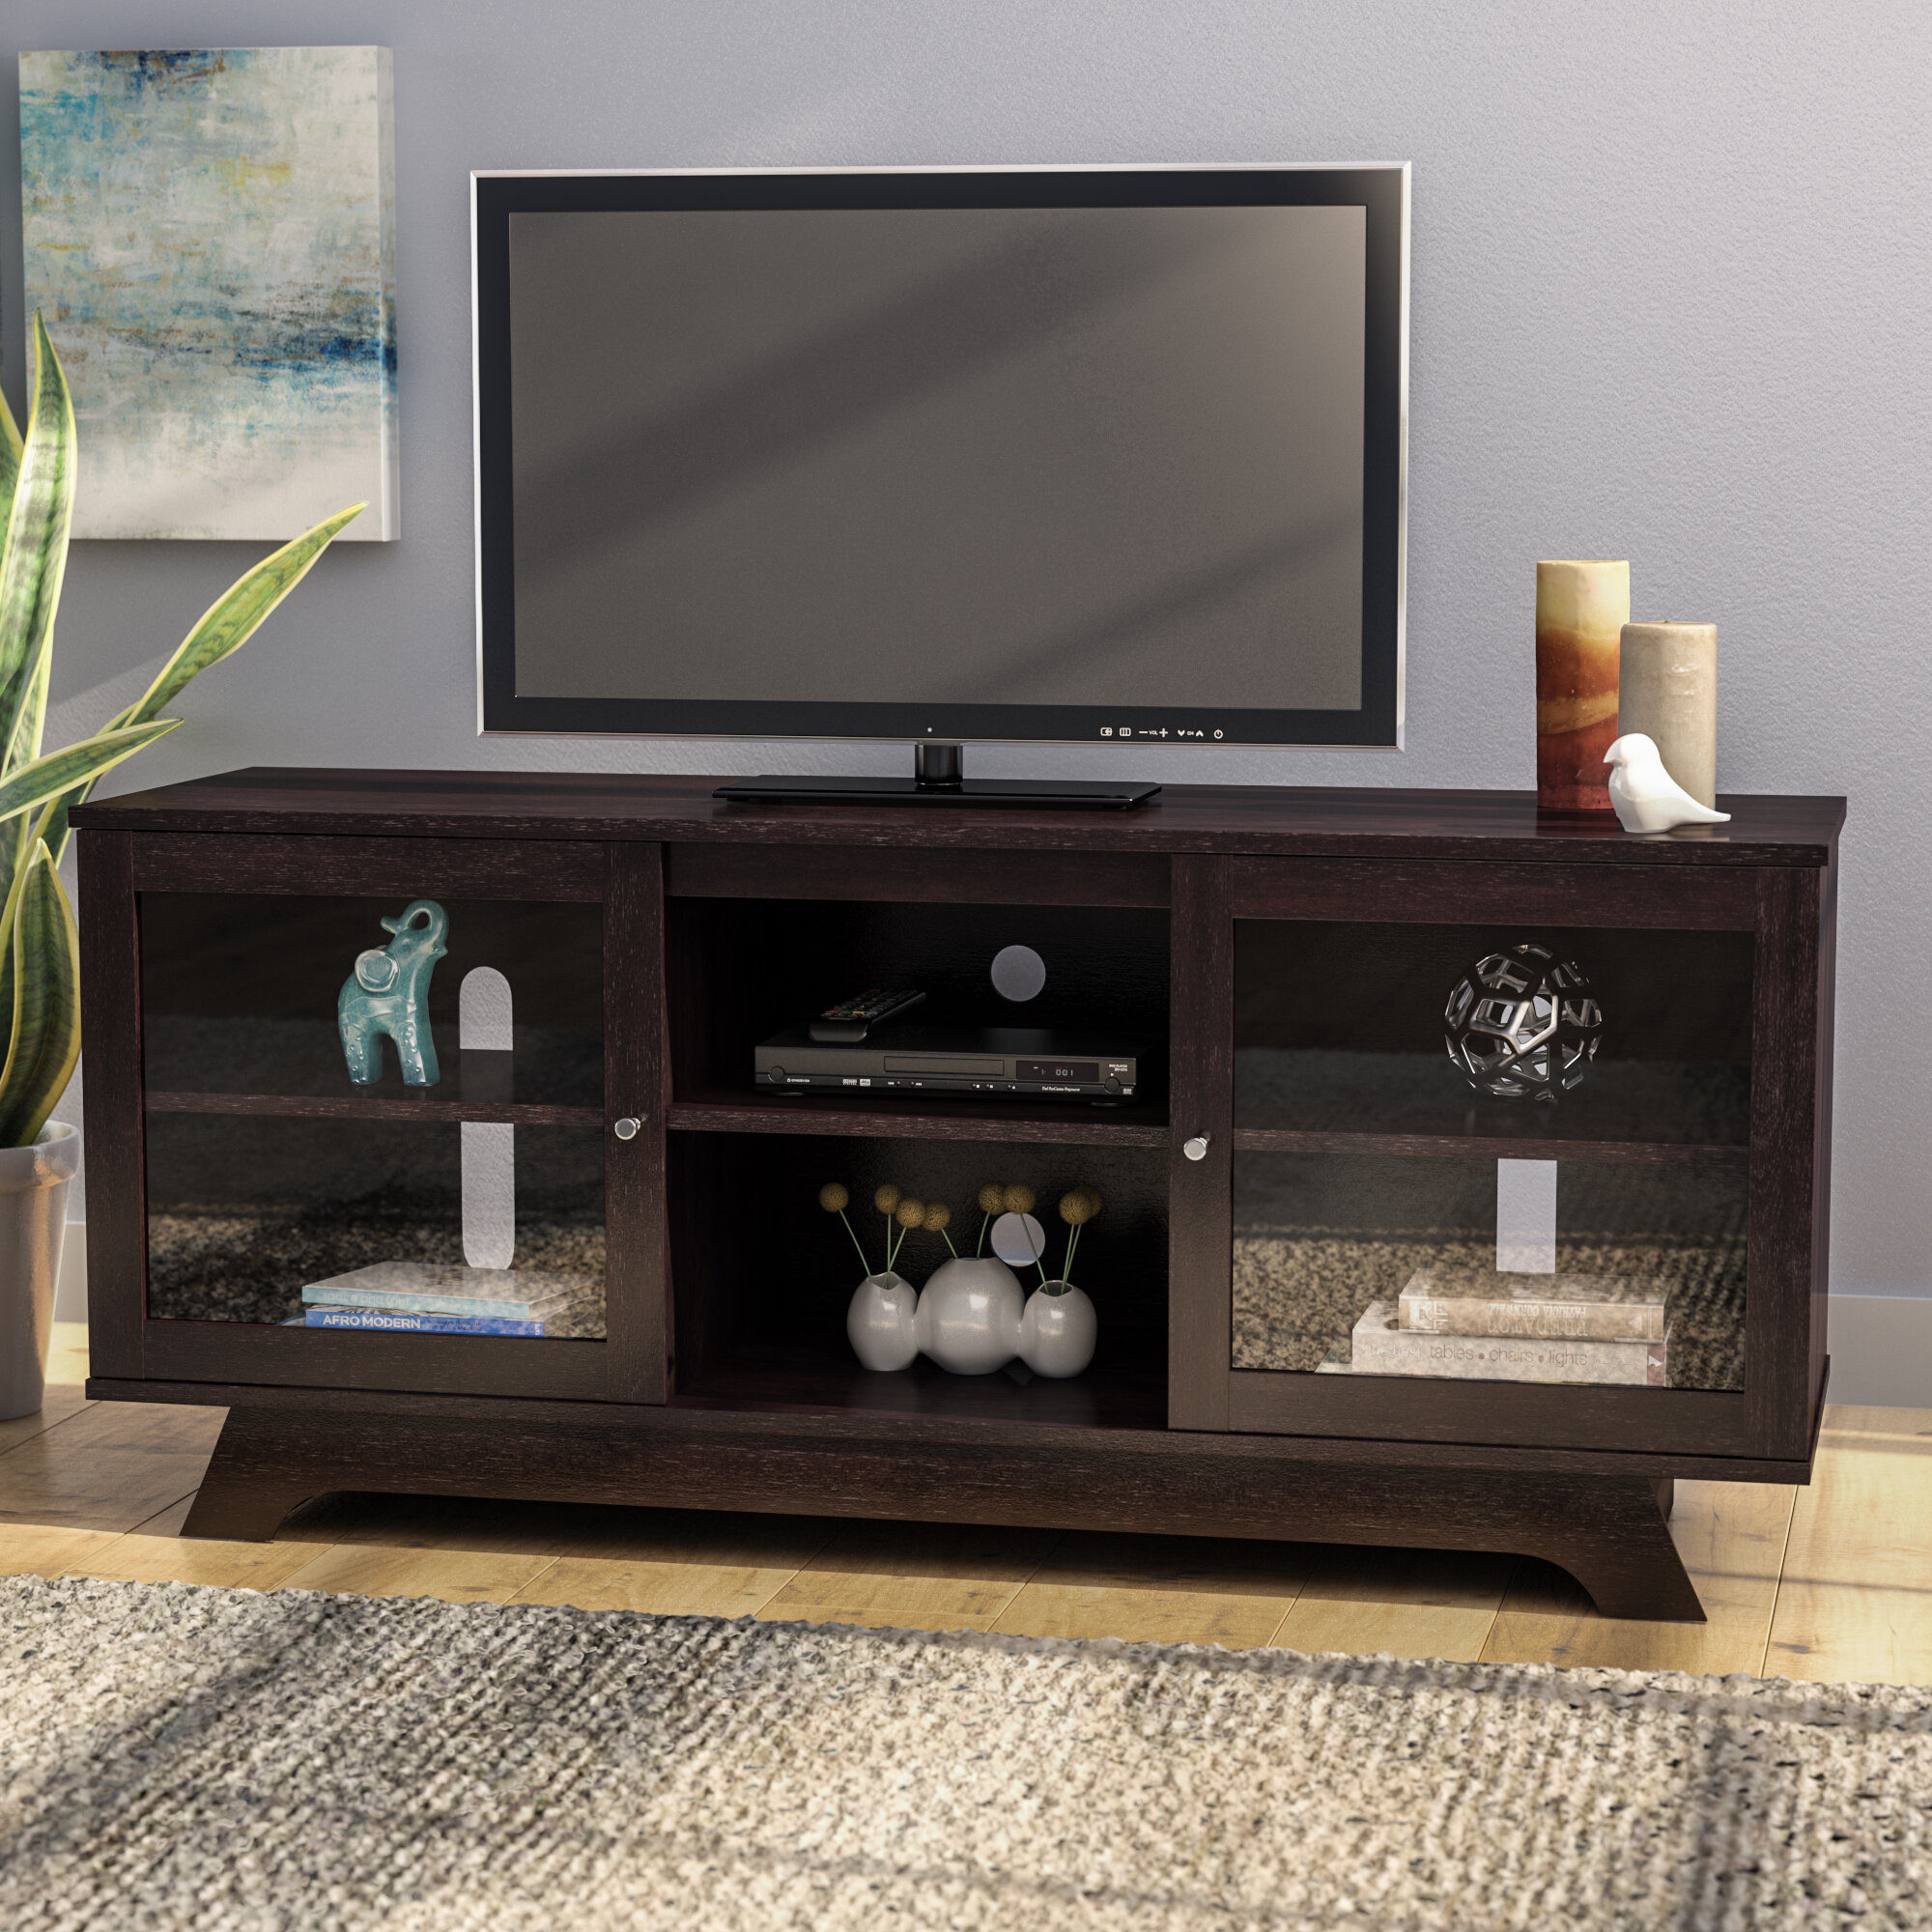 Latitude Run Lisinski Tv Stand For Tvs Up To 55 Reviews Wayfair